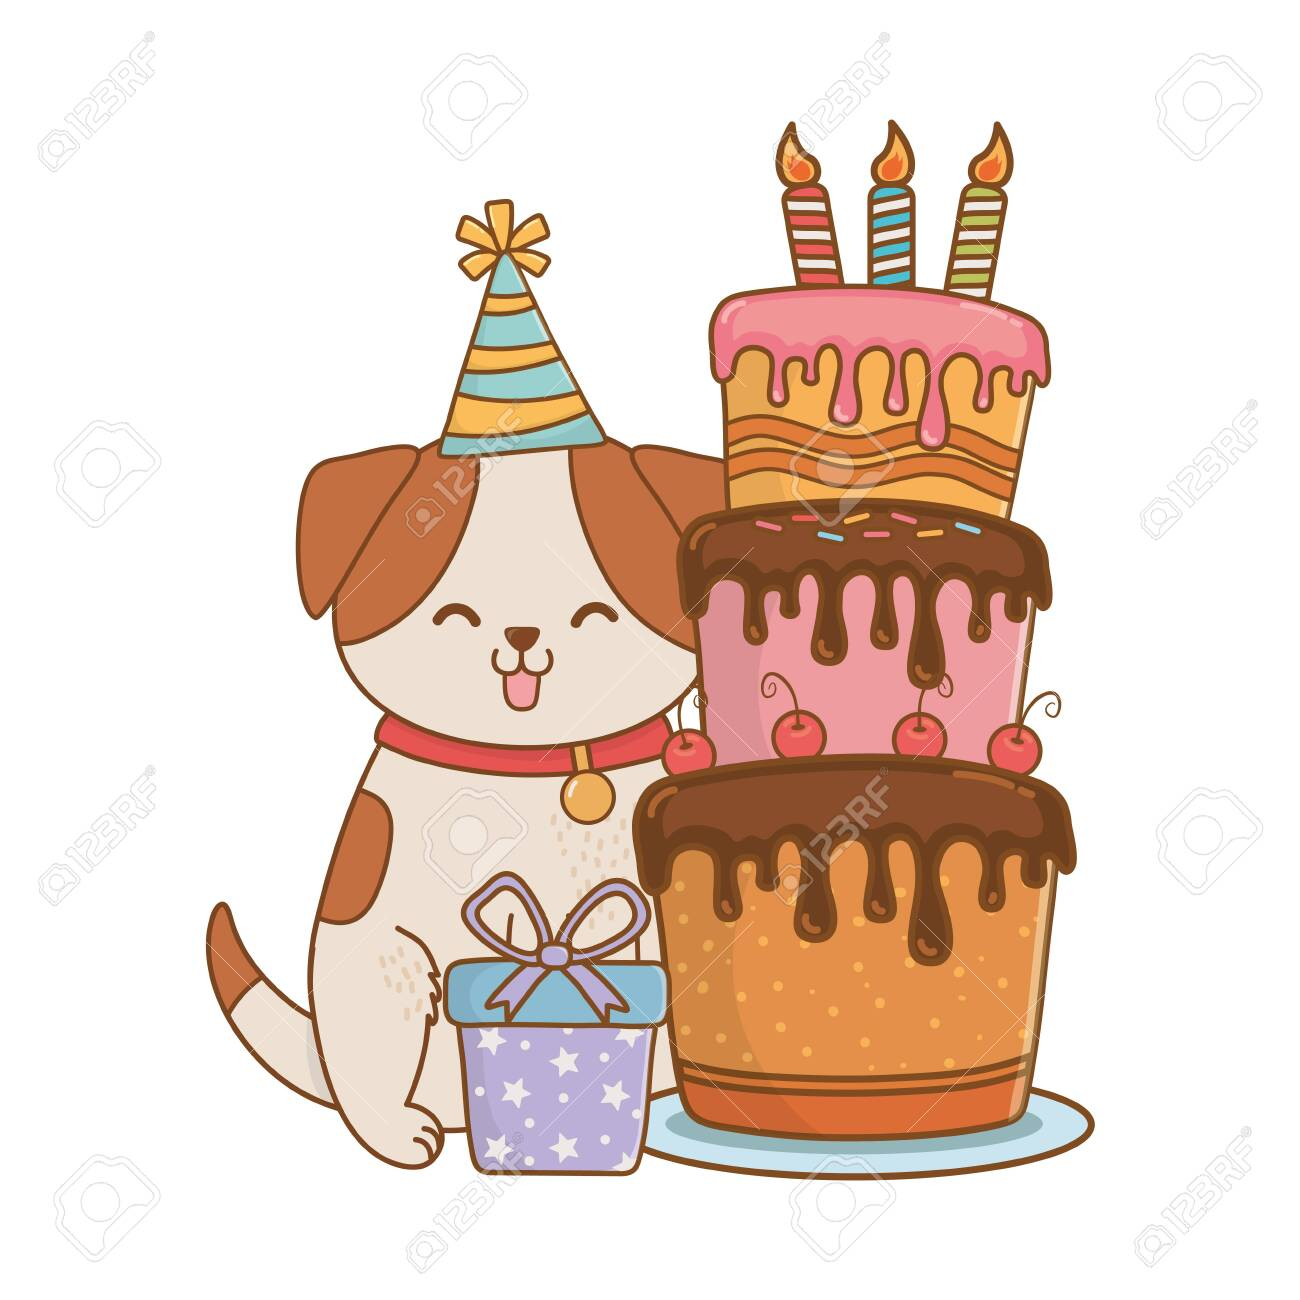 Cute Pet Little Animal Doggy Dog Birthday Party Concept Cartoon Royalty Free Cliparts Vectors And Stock Illustration Image 124570879